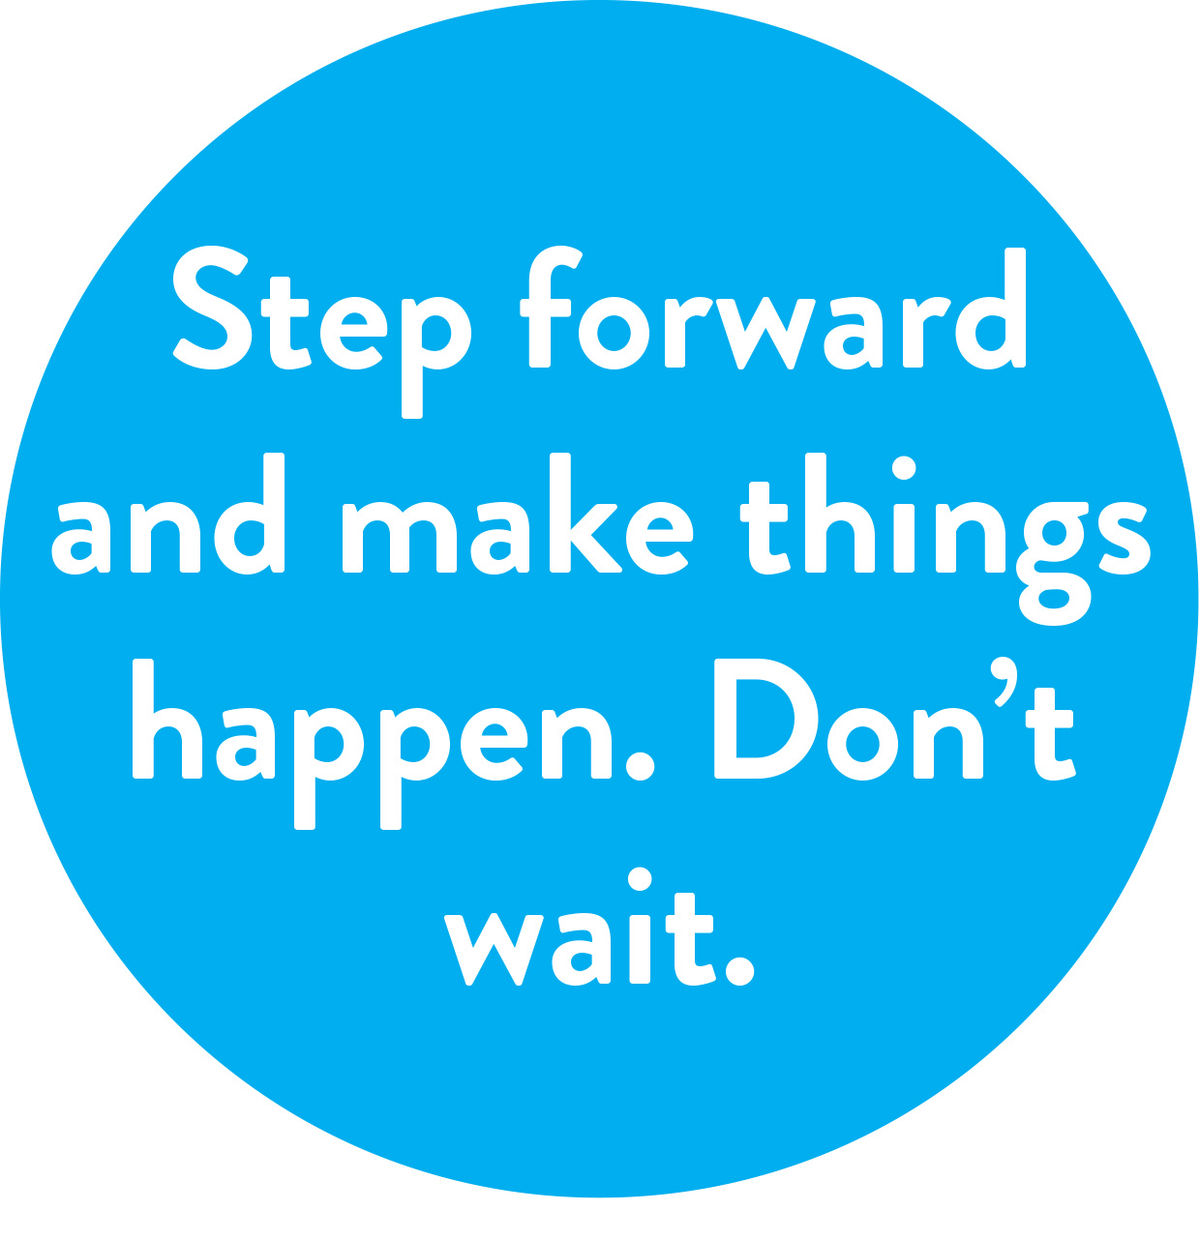 Step forward and make things happen